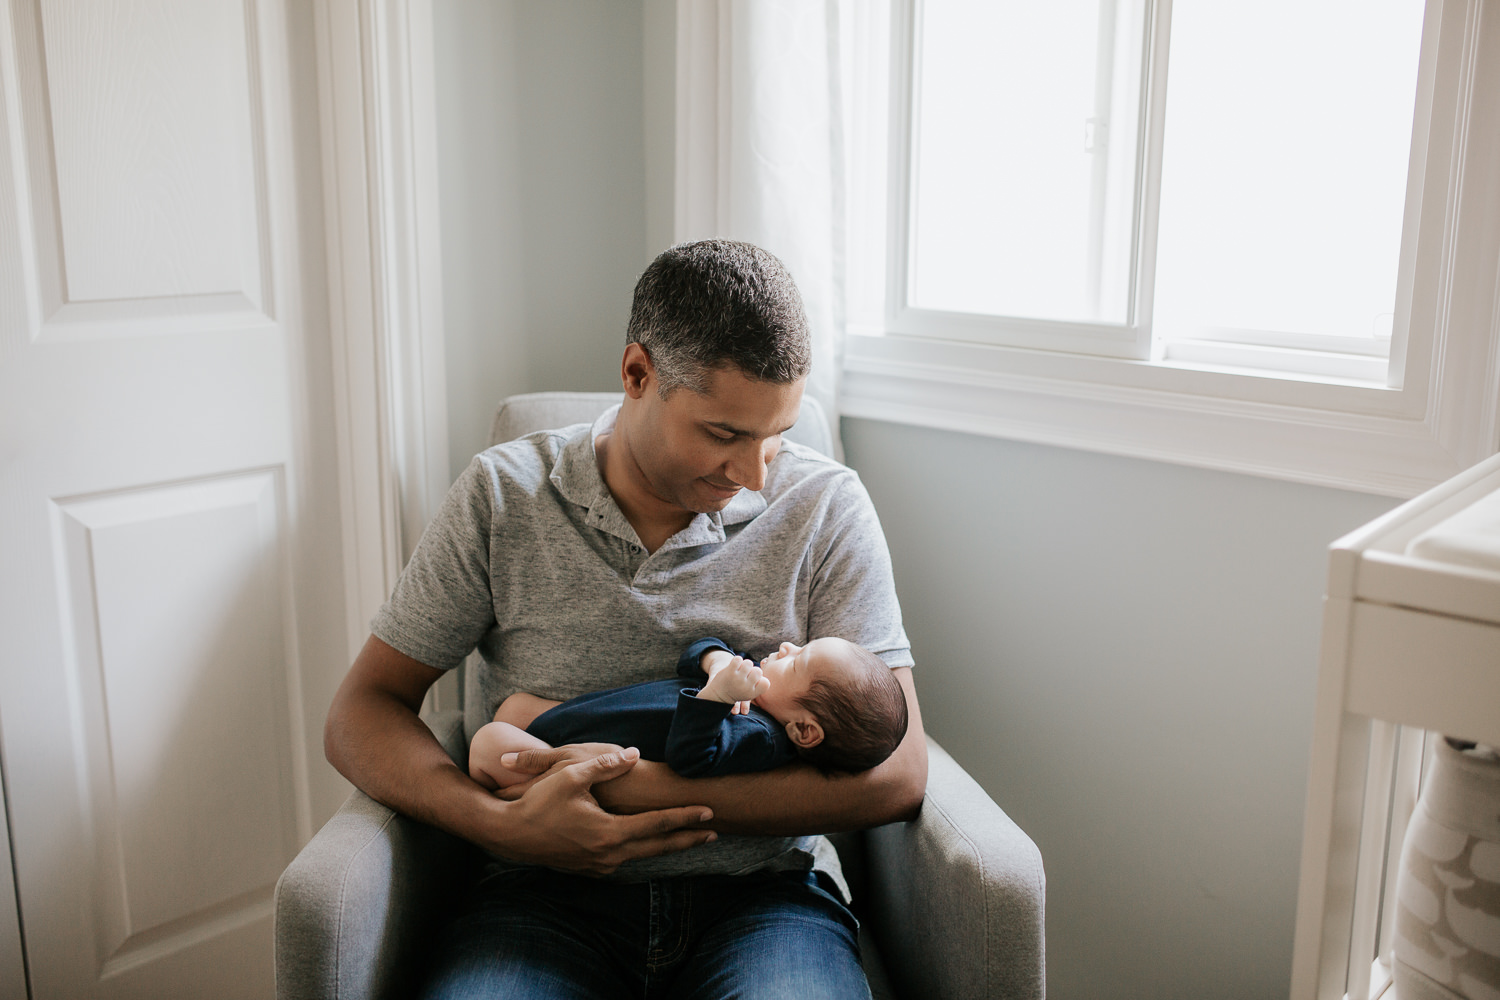 father sitting in nursery rocker holding 2 week old baby boy in navy blue onesie who is sleeping - Markham In-Home Photography